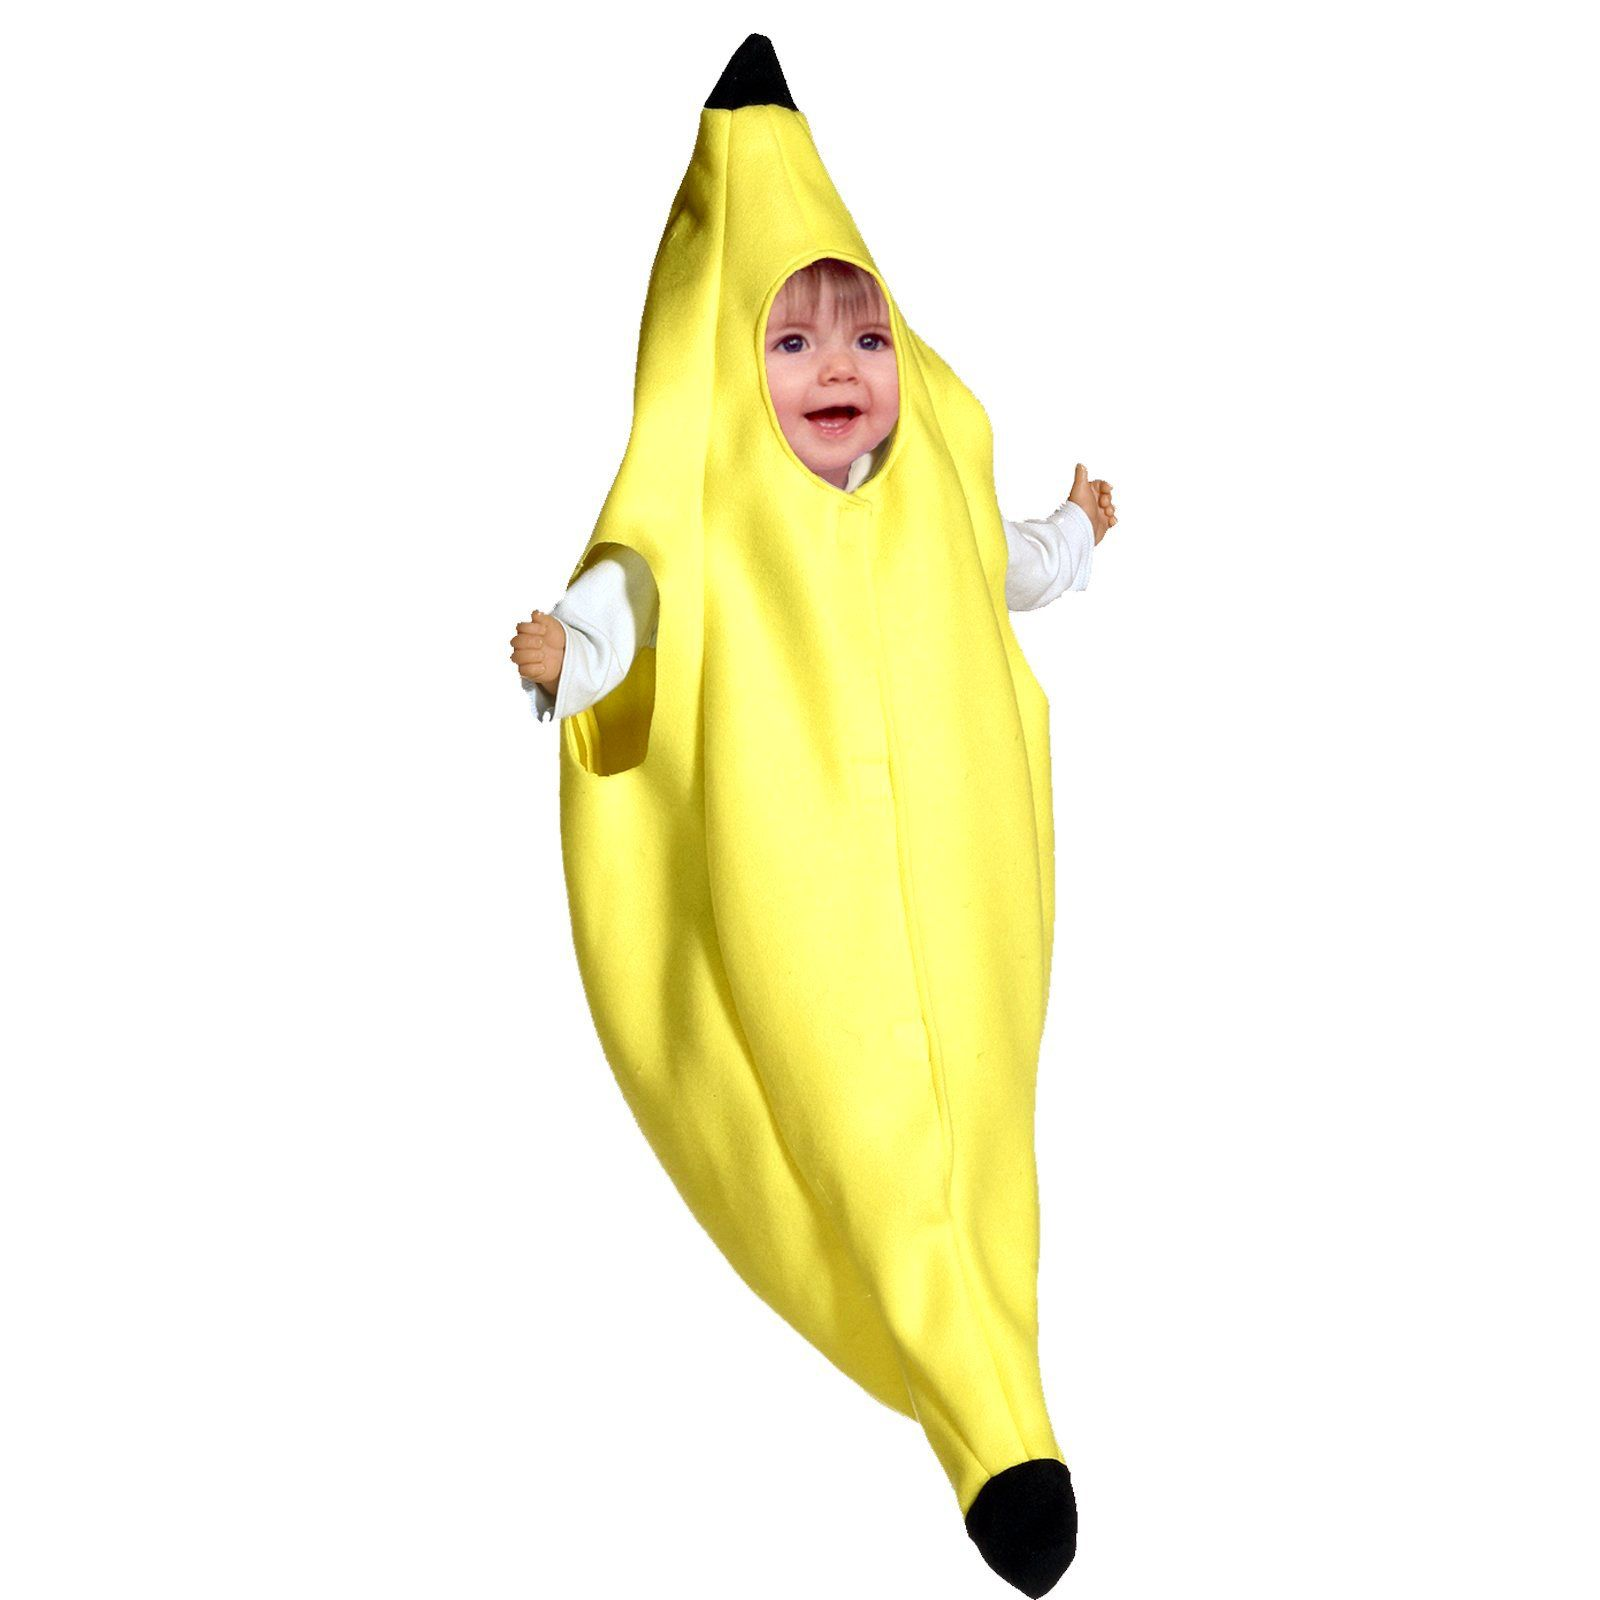 Banana Bunting Infant Costume | Costumes, Food costumes and ...